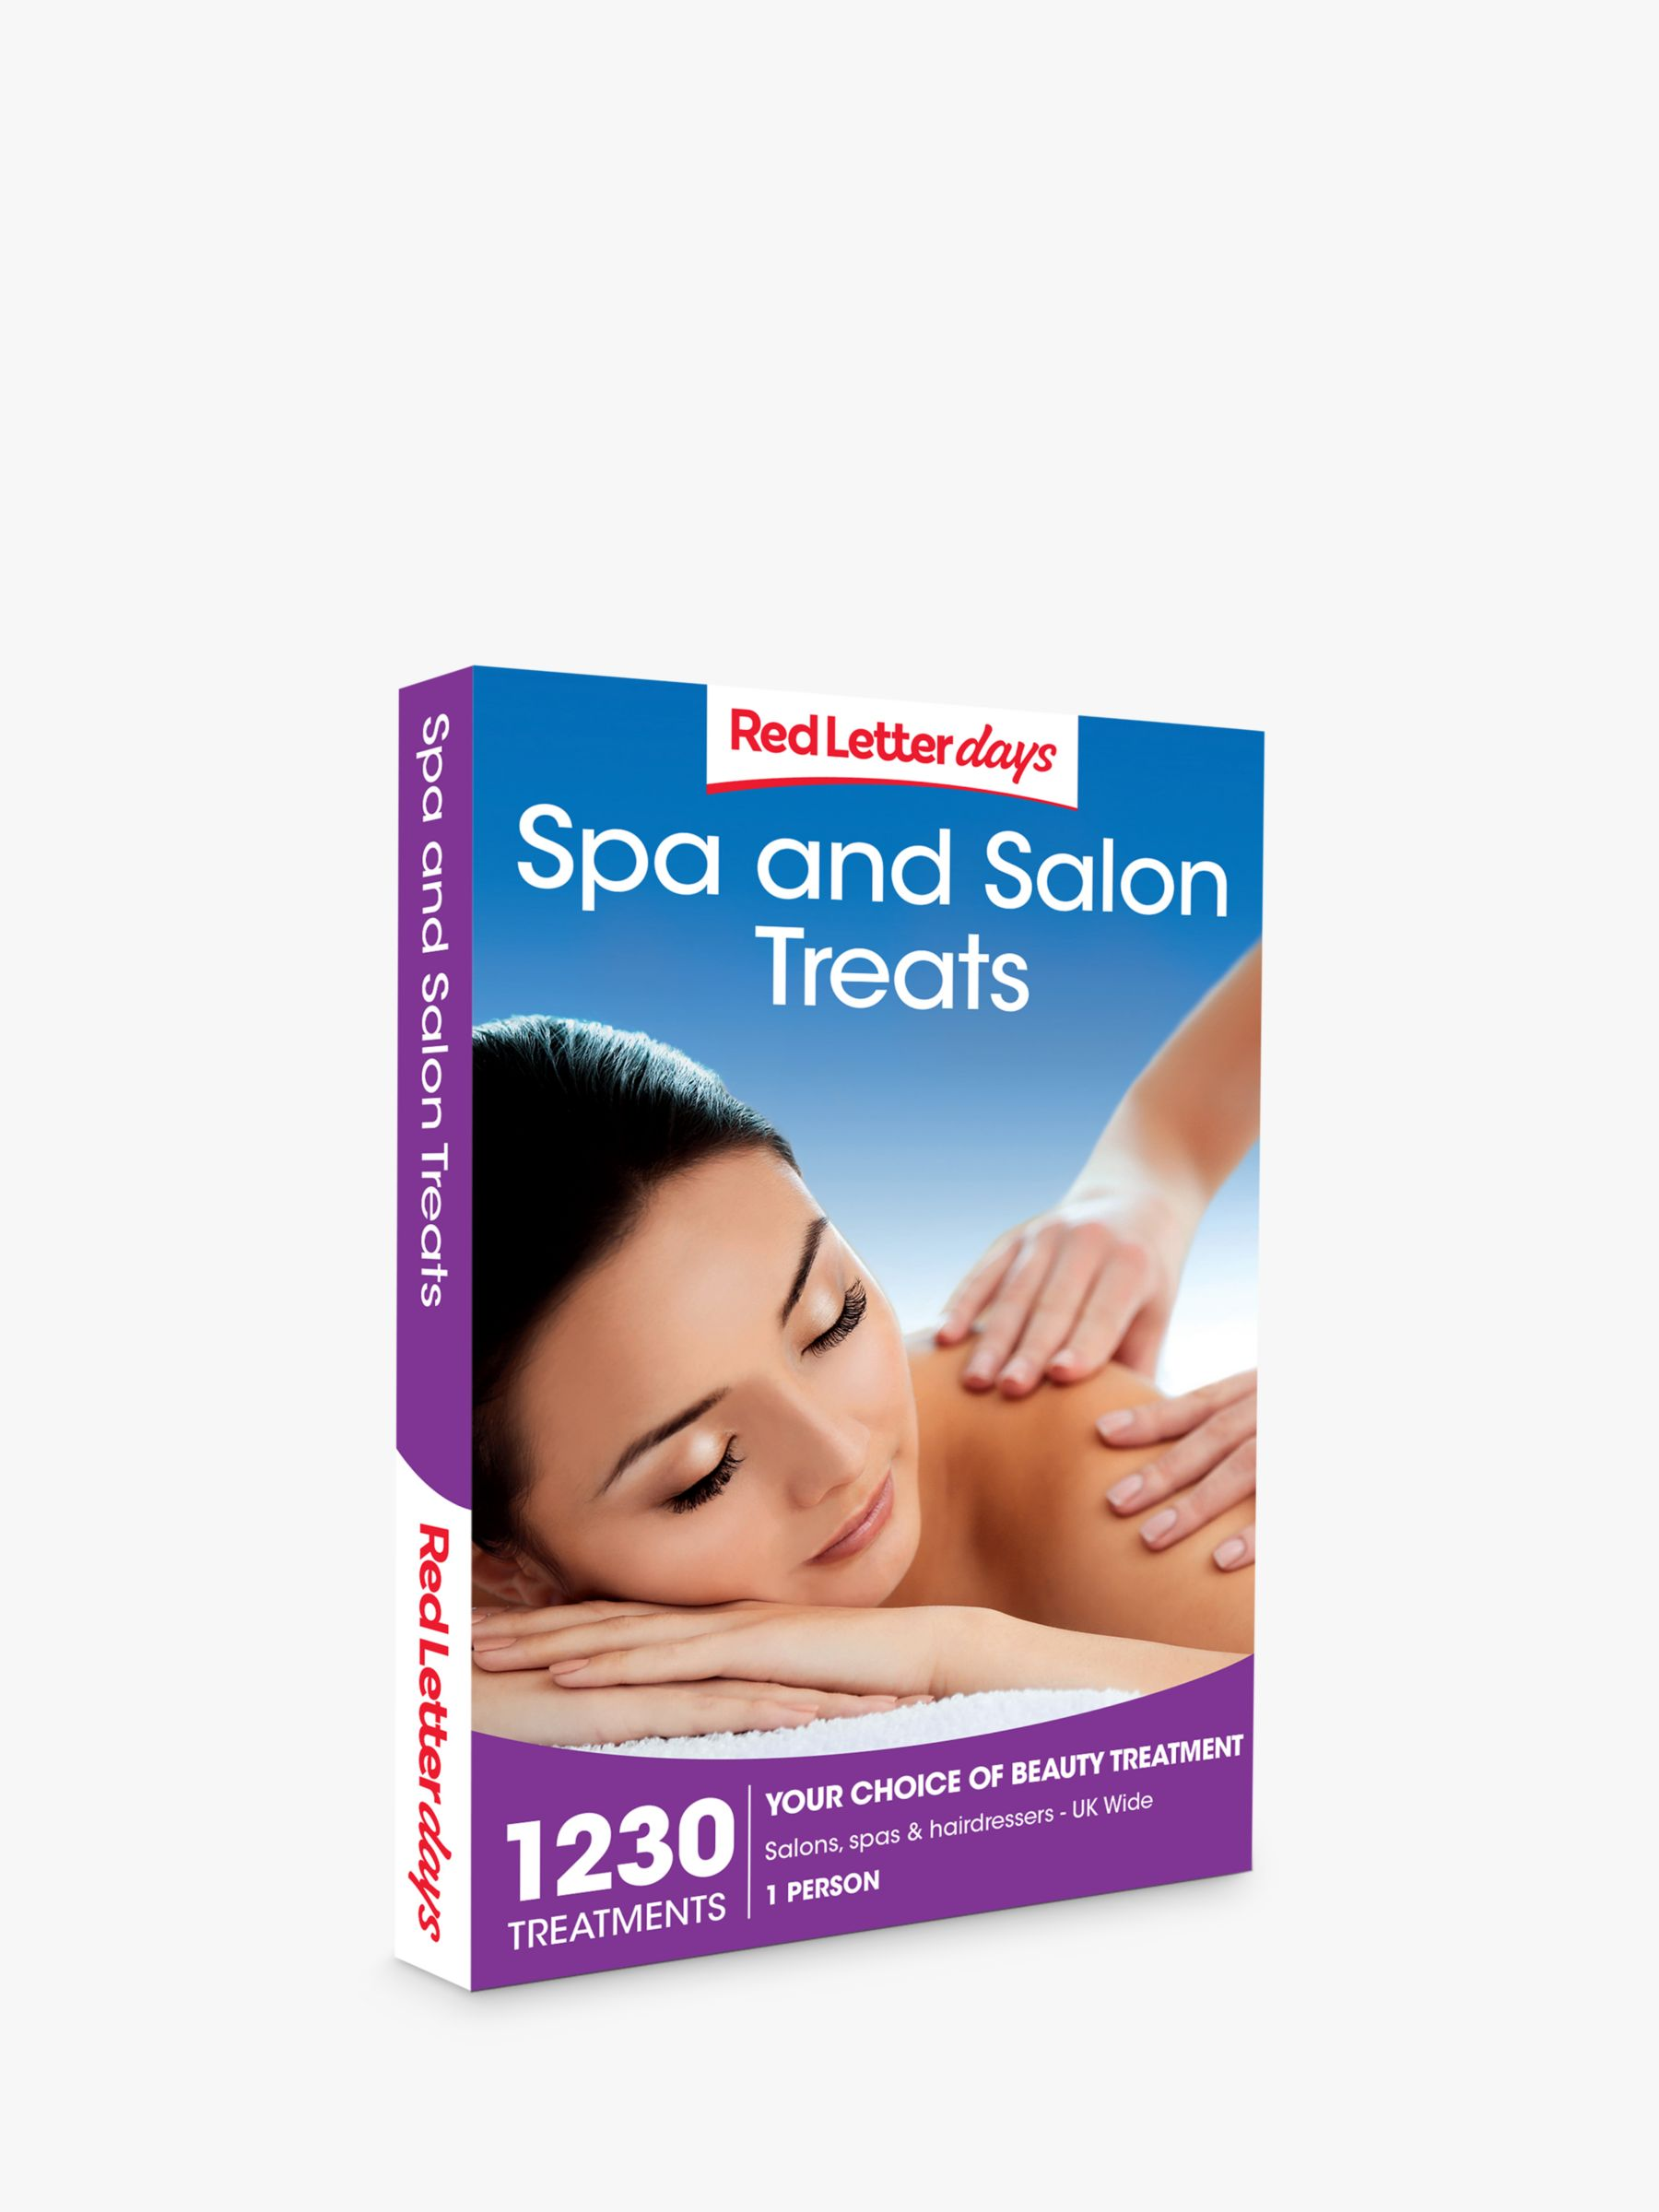 Red Letter Days Red Letter Days Spa and Salon Treats Gift Experience